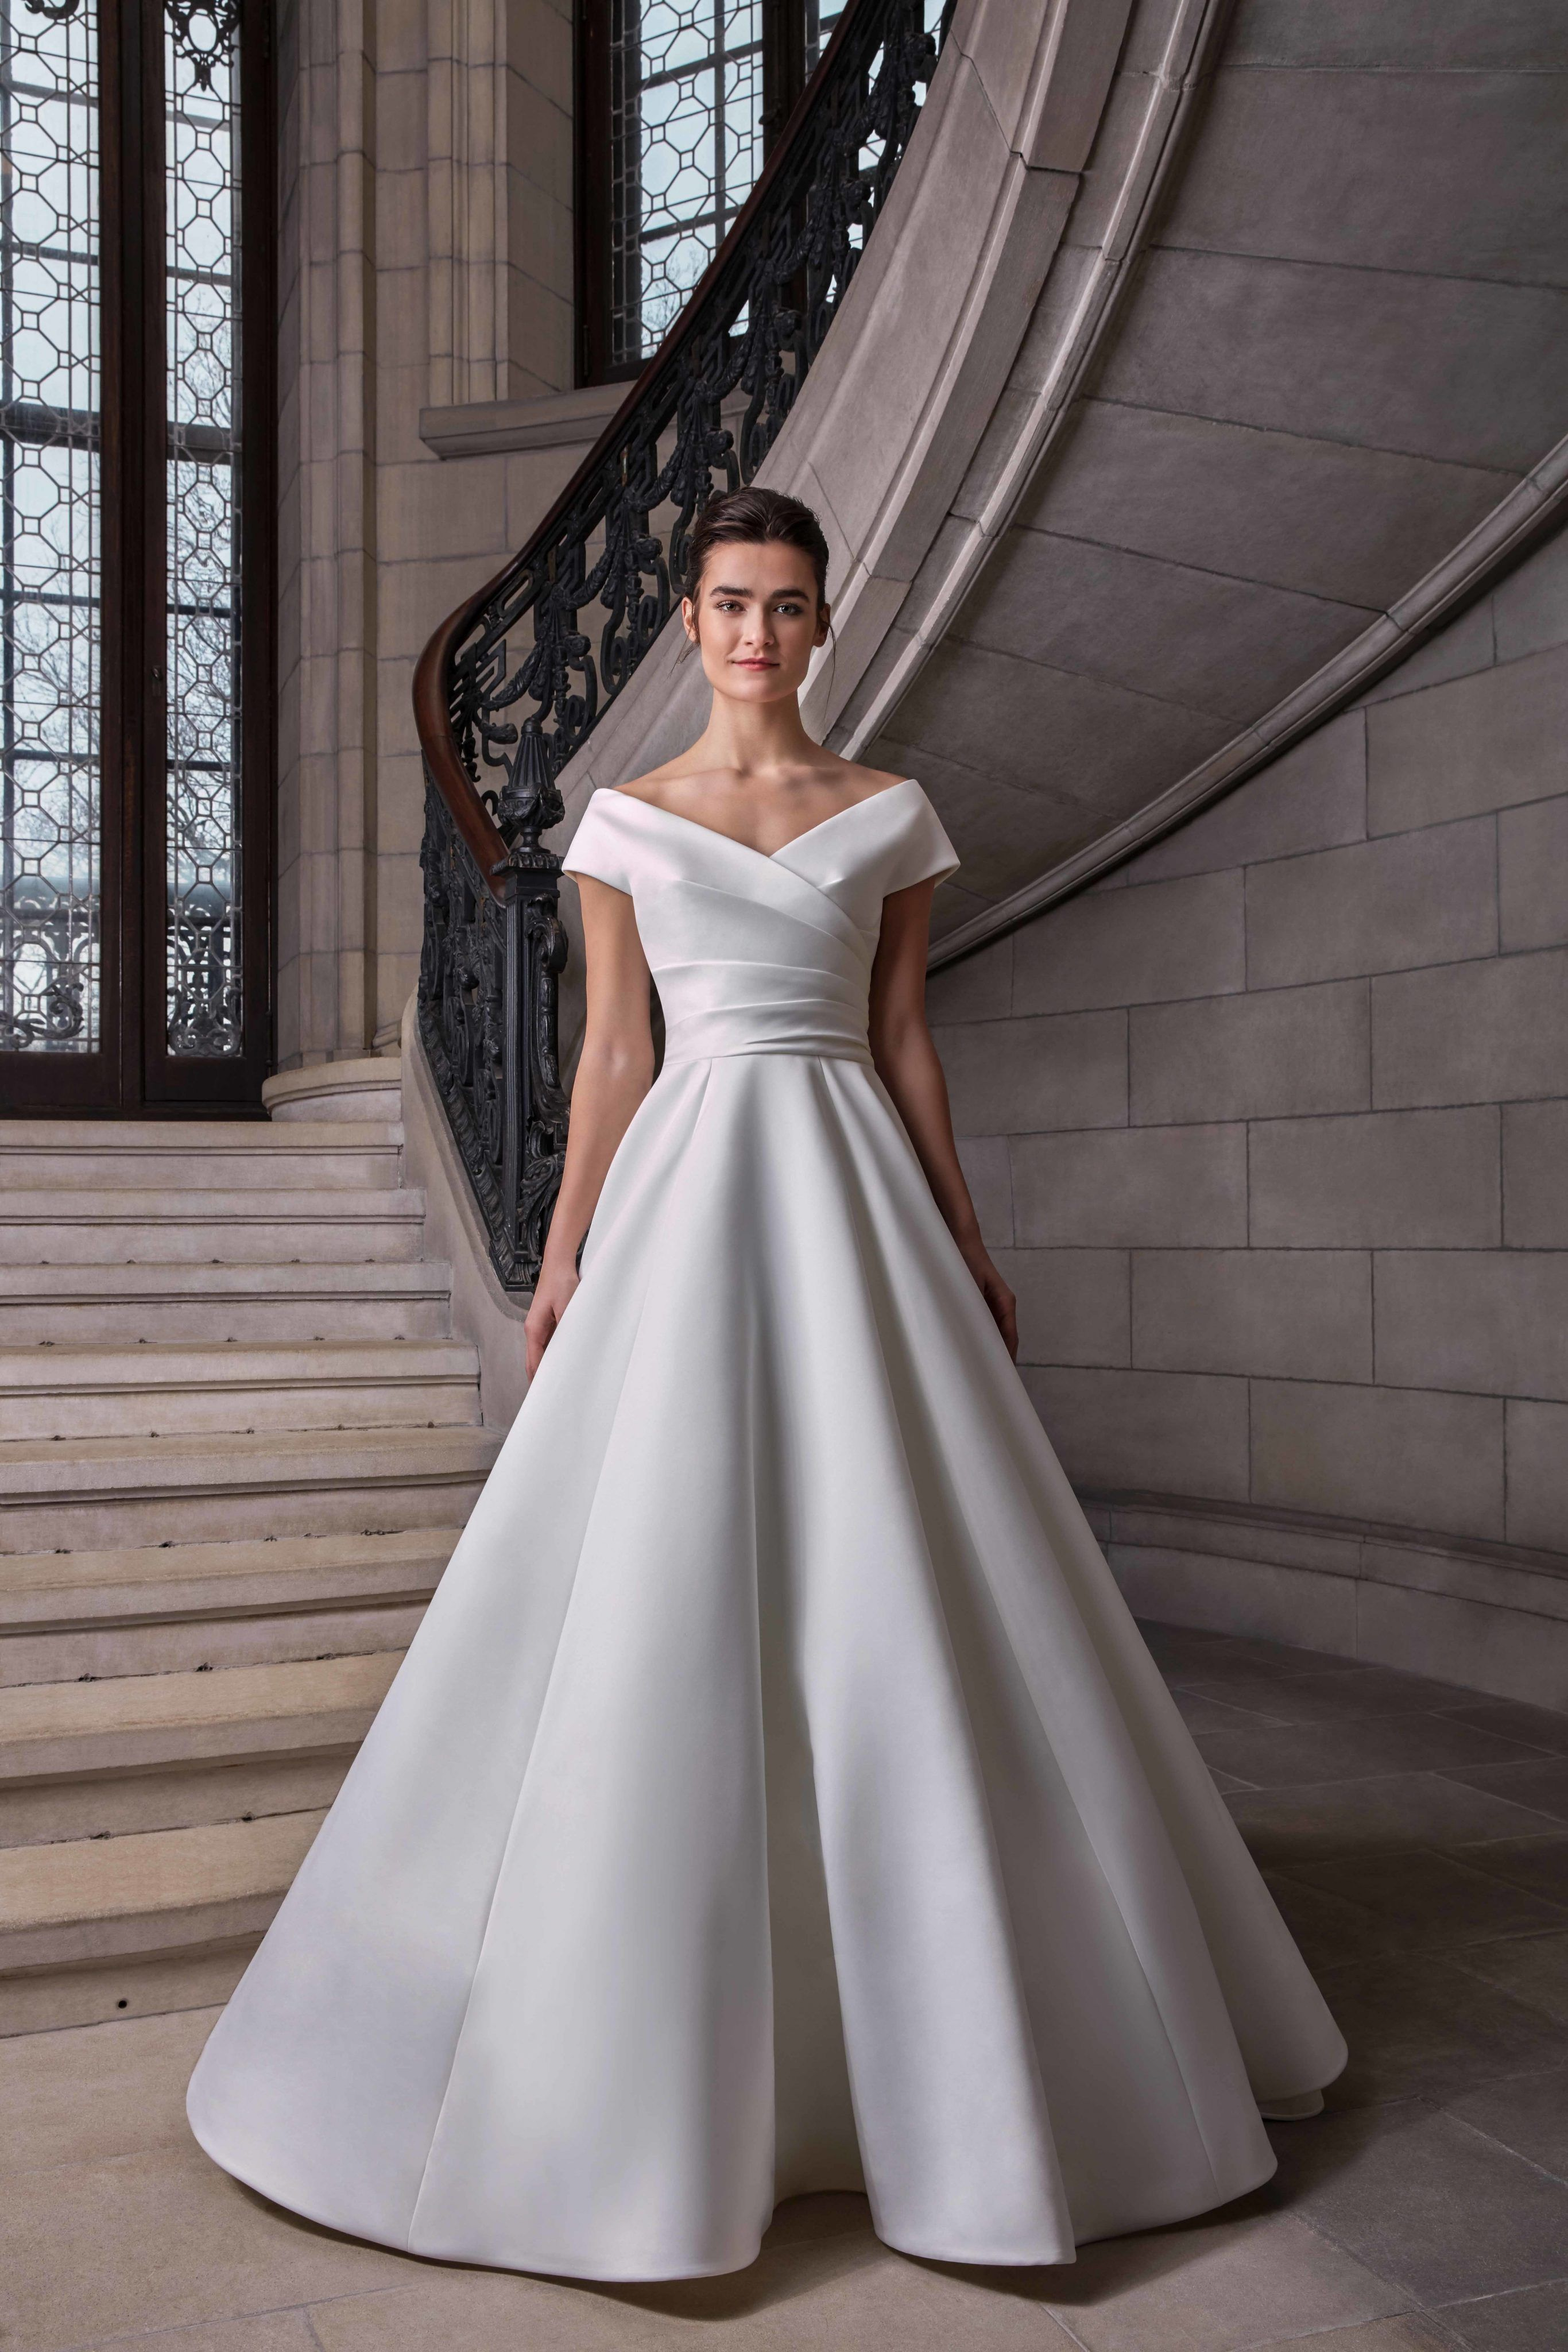 Simple Silk Ball Gown Wedding Dress In 2020 Wedding Dresses Gowns